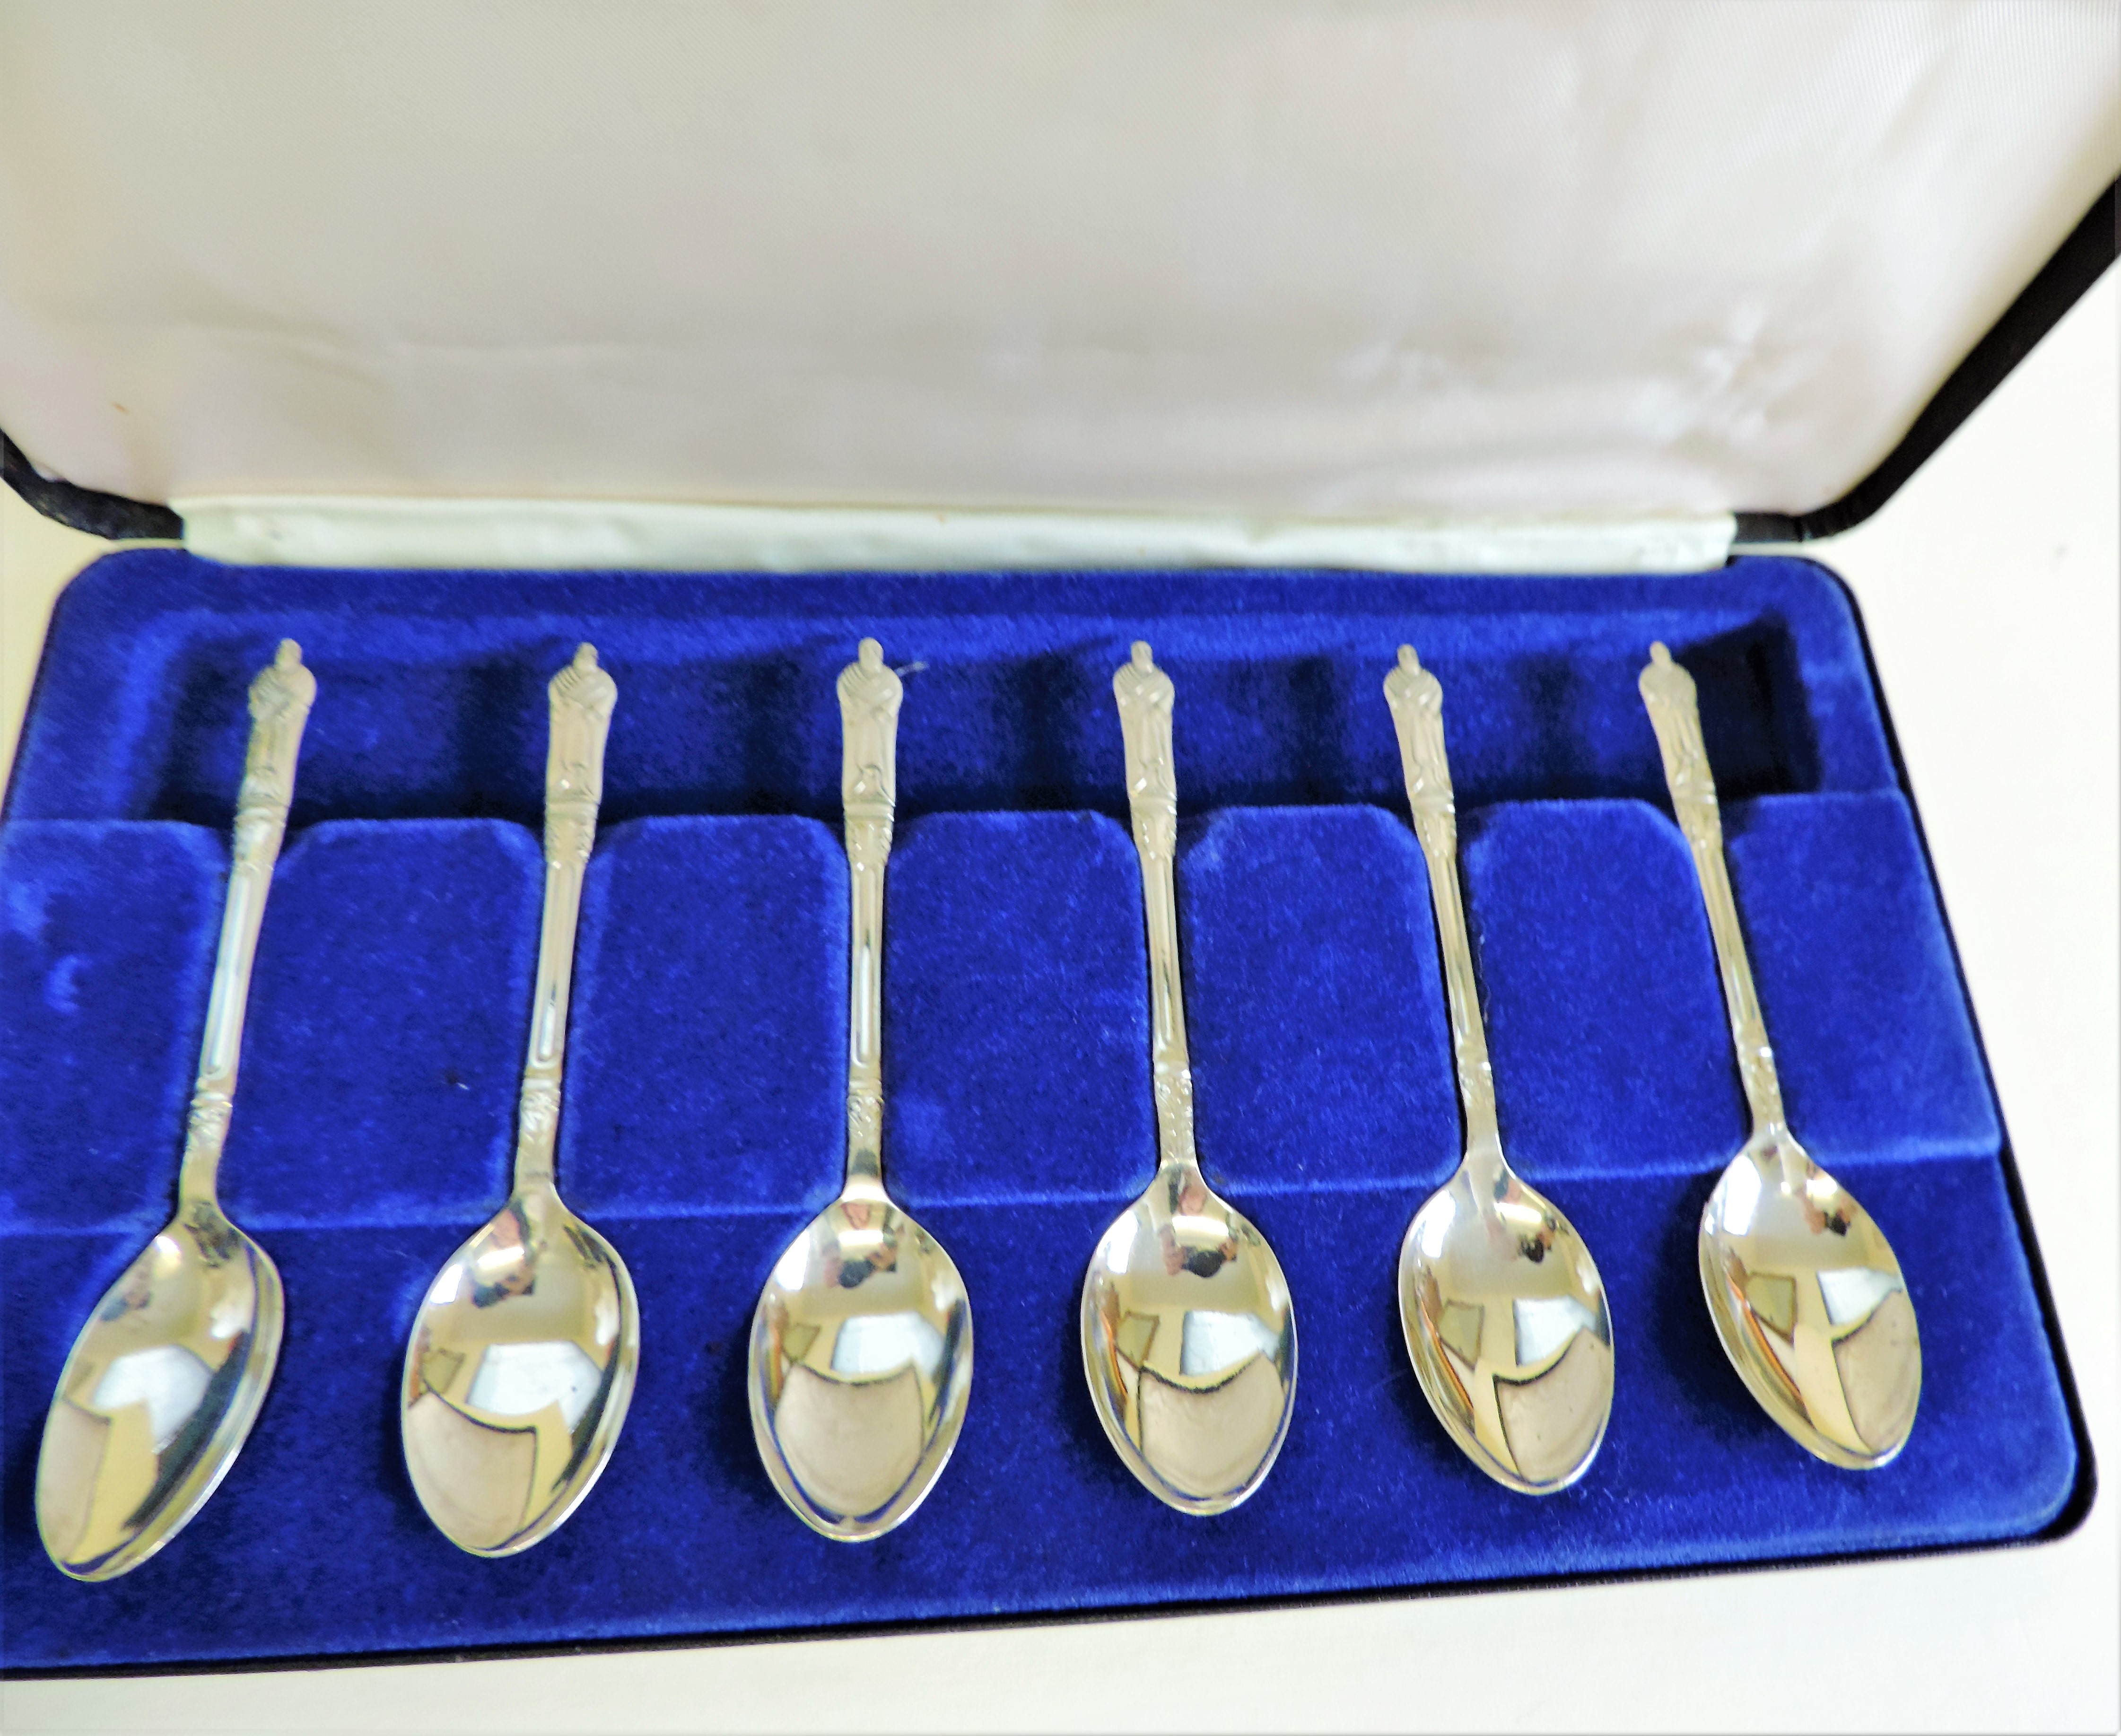 Cased Set 6 Silver Plated Apostle Tea Spoons - Image 2 of 3